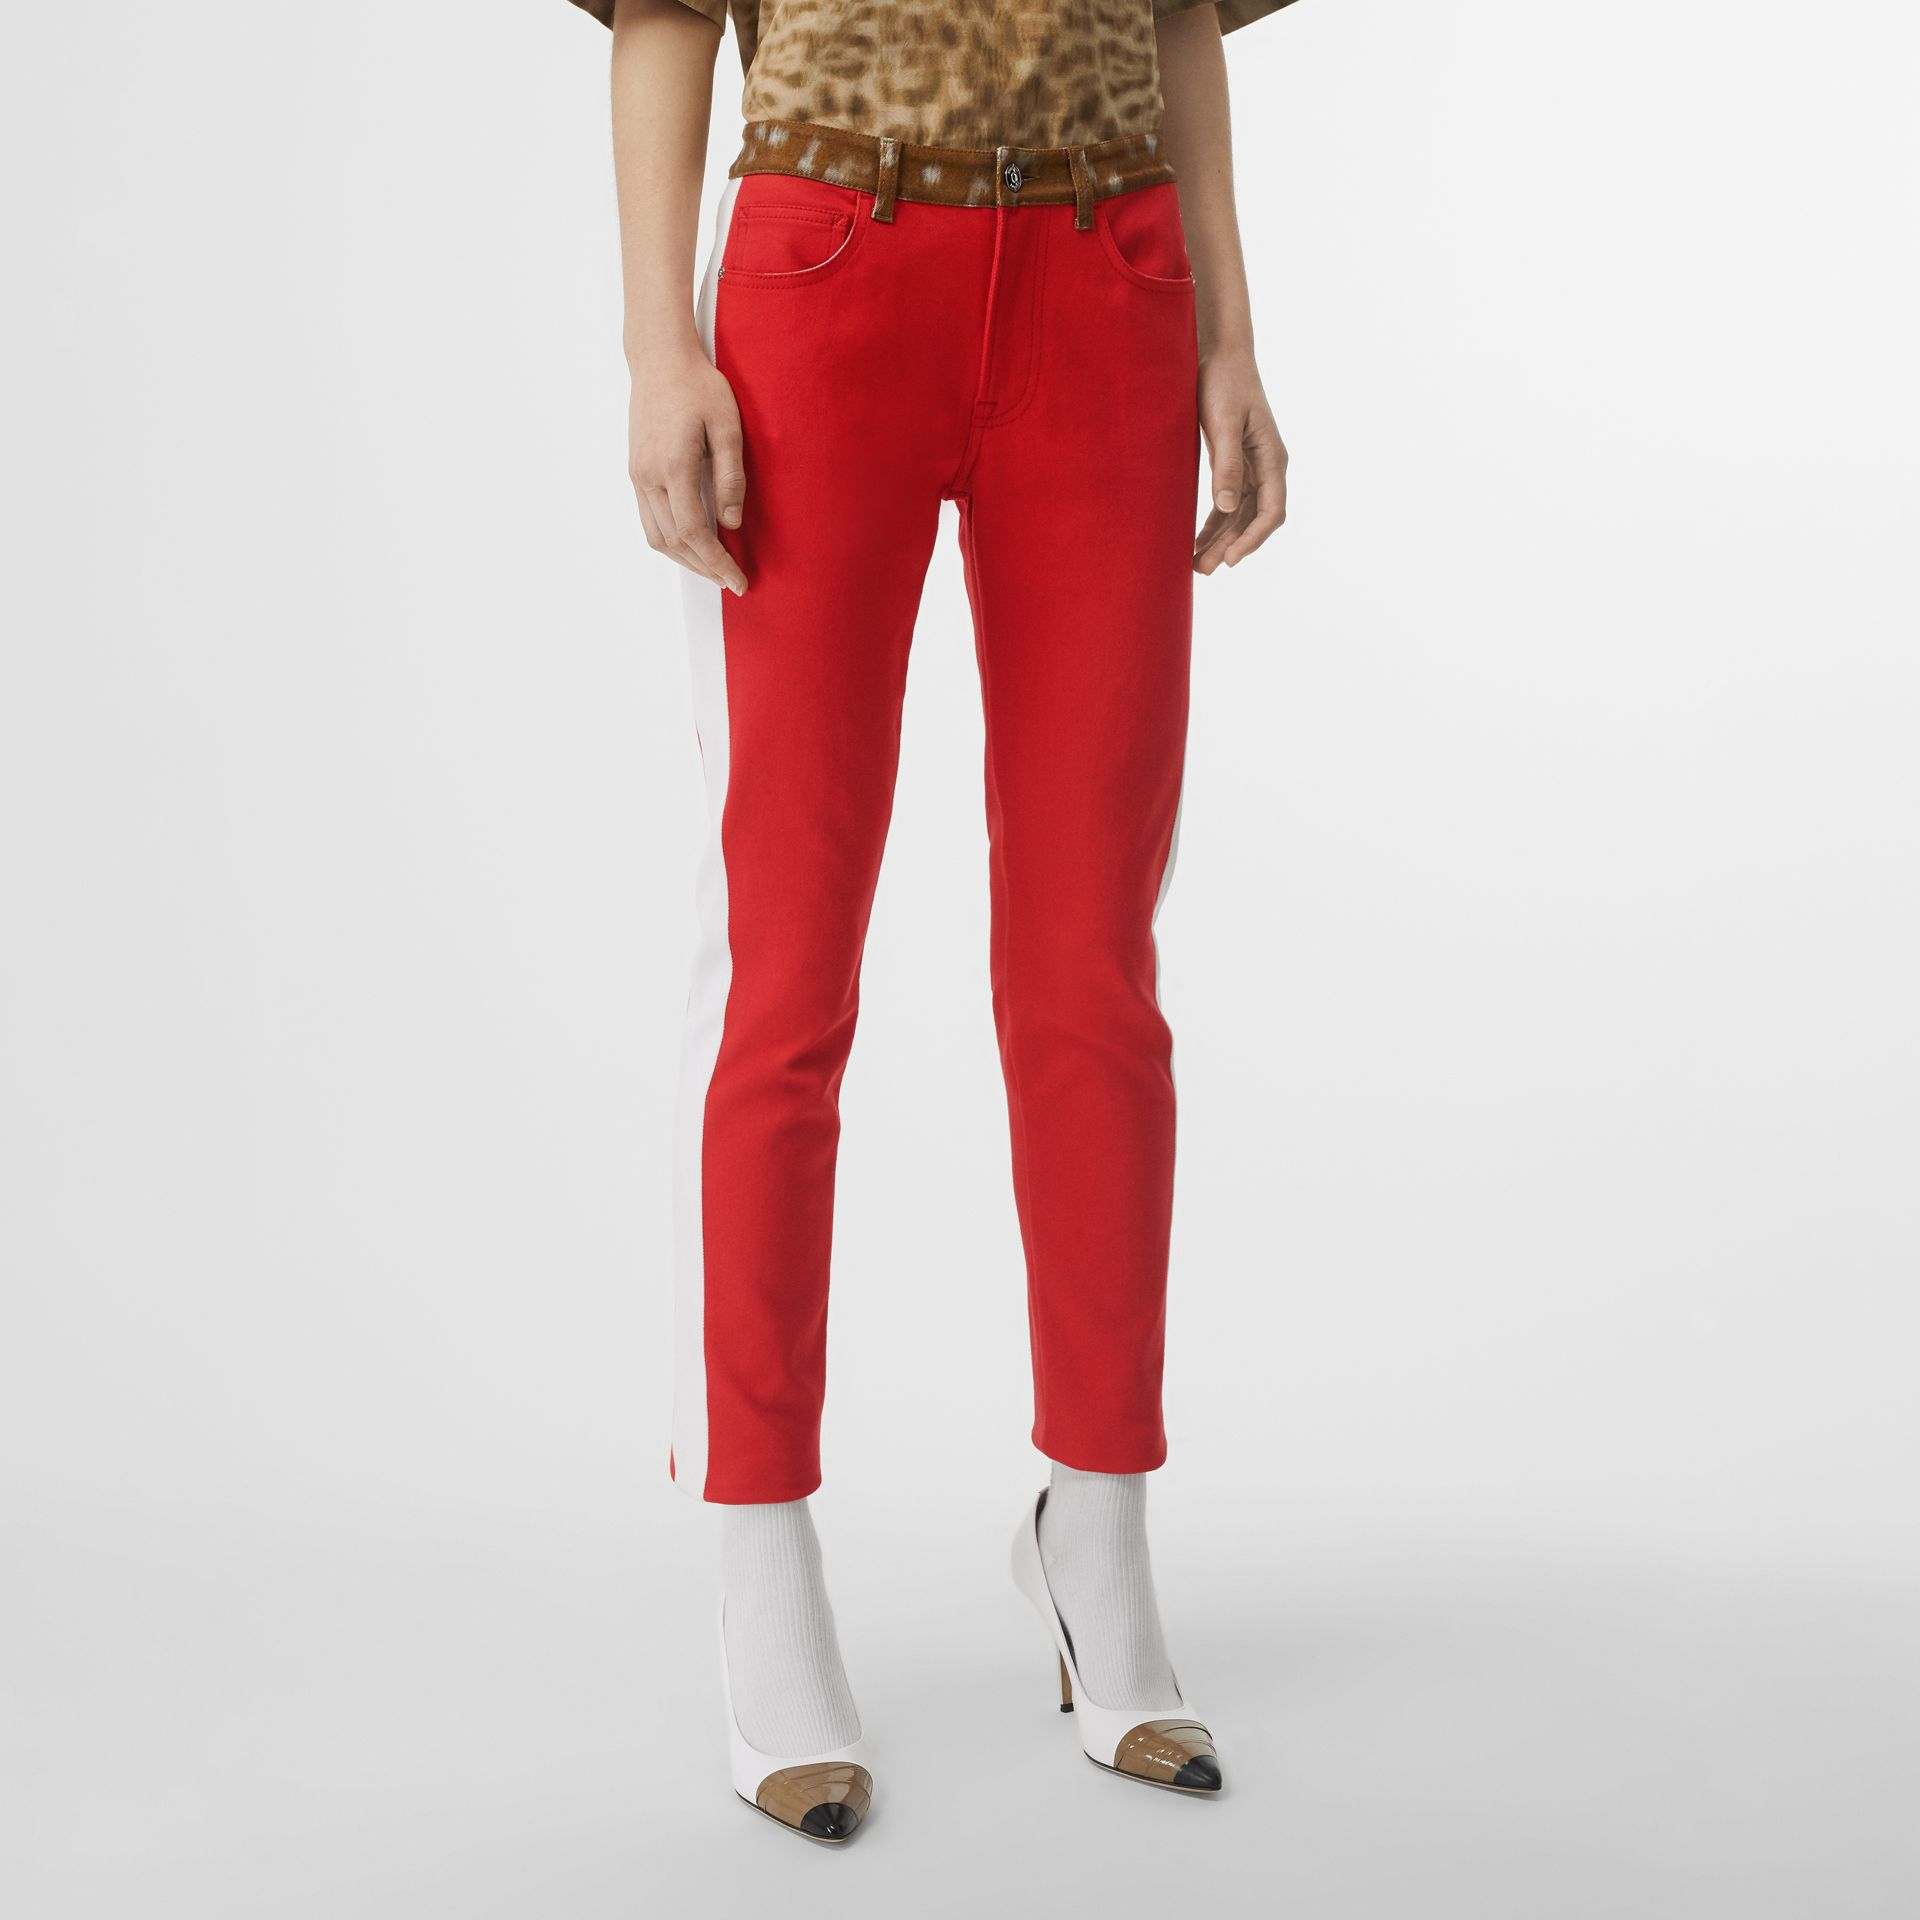 Straight Fit Deer Print Trim Japanese Denim Jeans in Bright Red - Women | Burberry Canada - gallery image 4